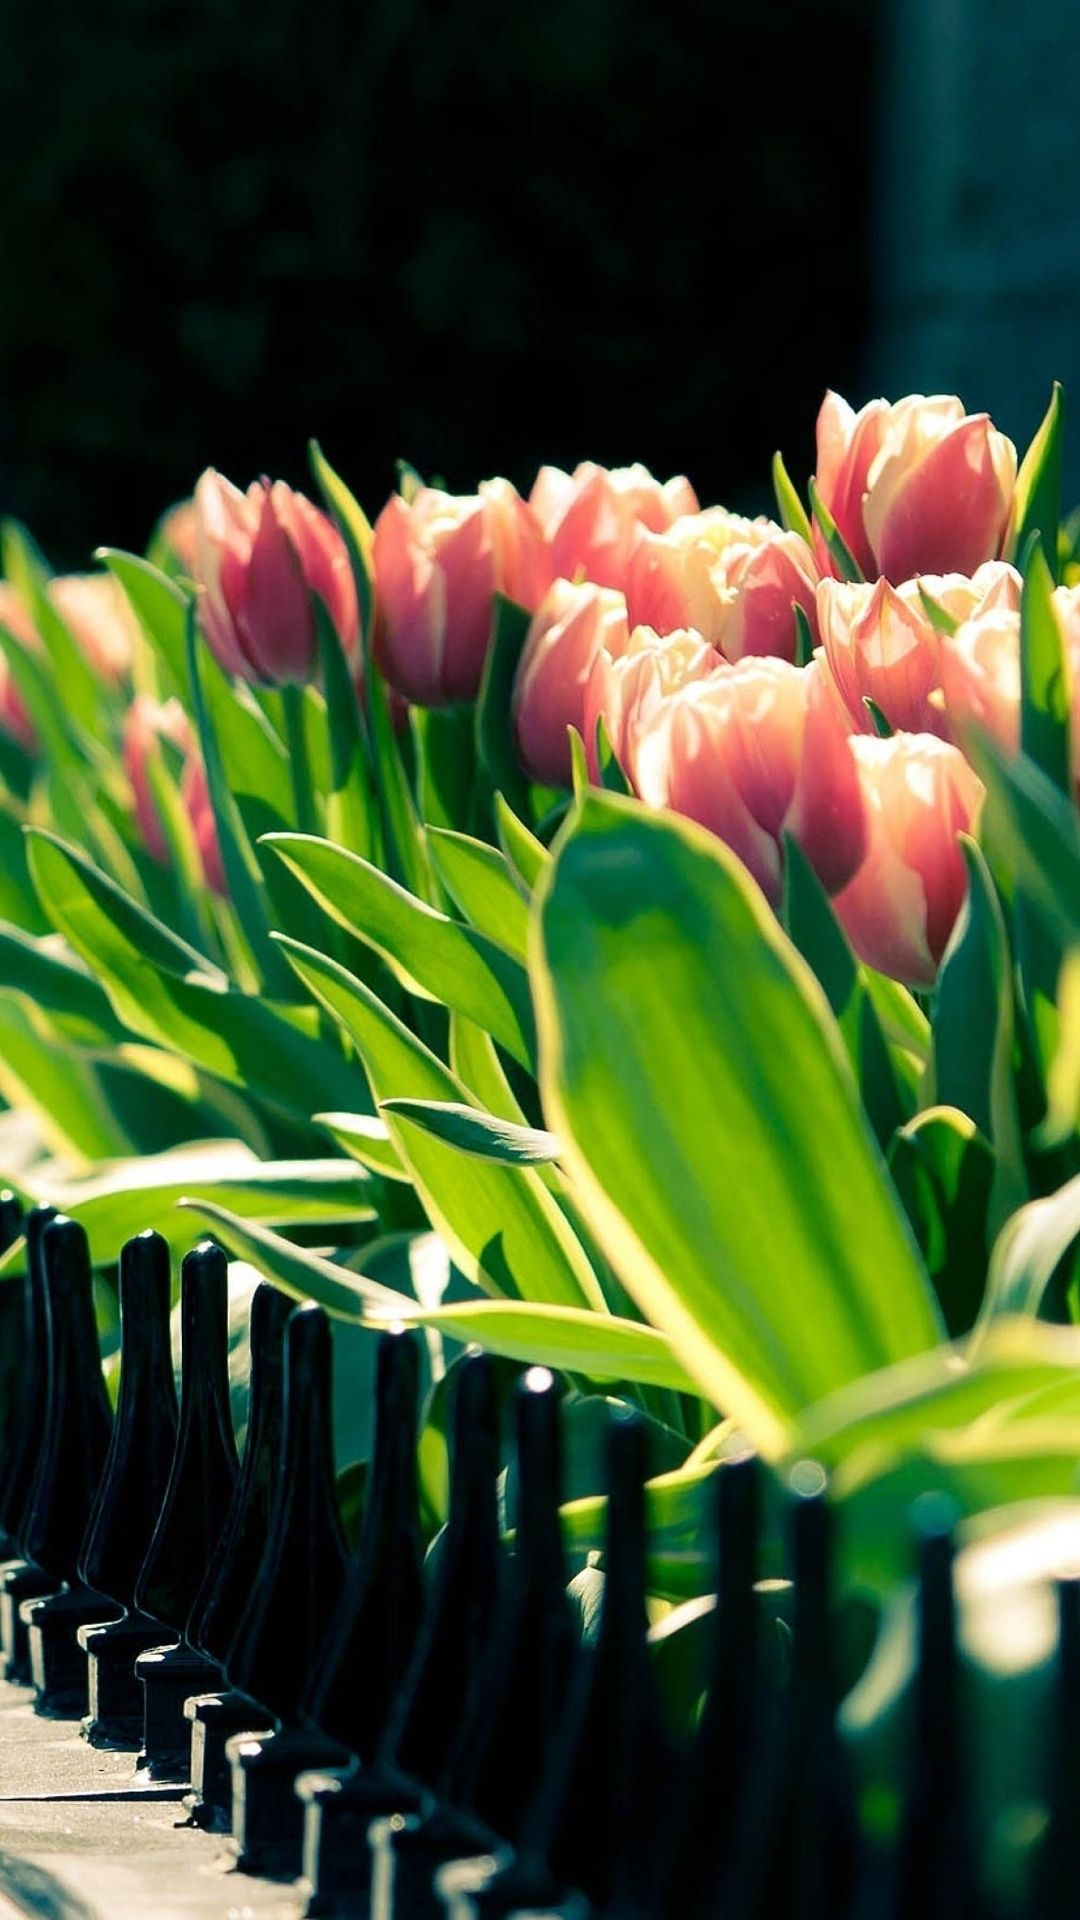 Of tulips cecila san tags flower field photoshop vintage tulips - Tulip Garden Beside Fence Iphone 6 Plus Wallpaper